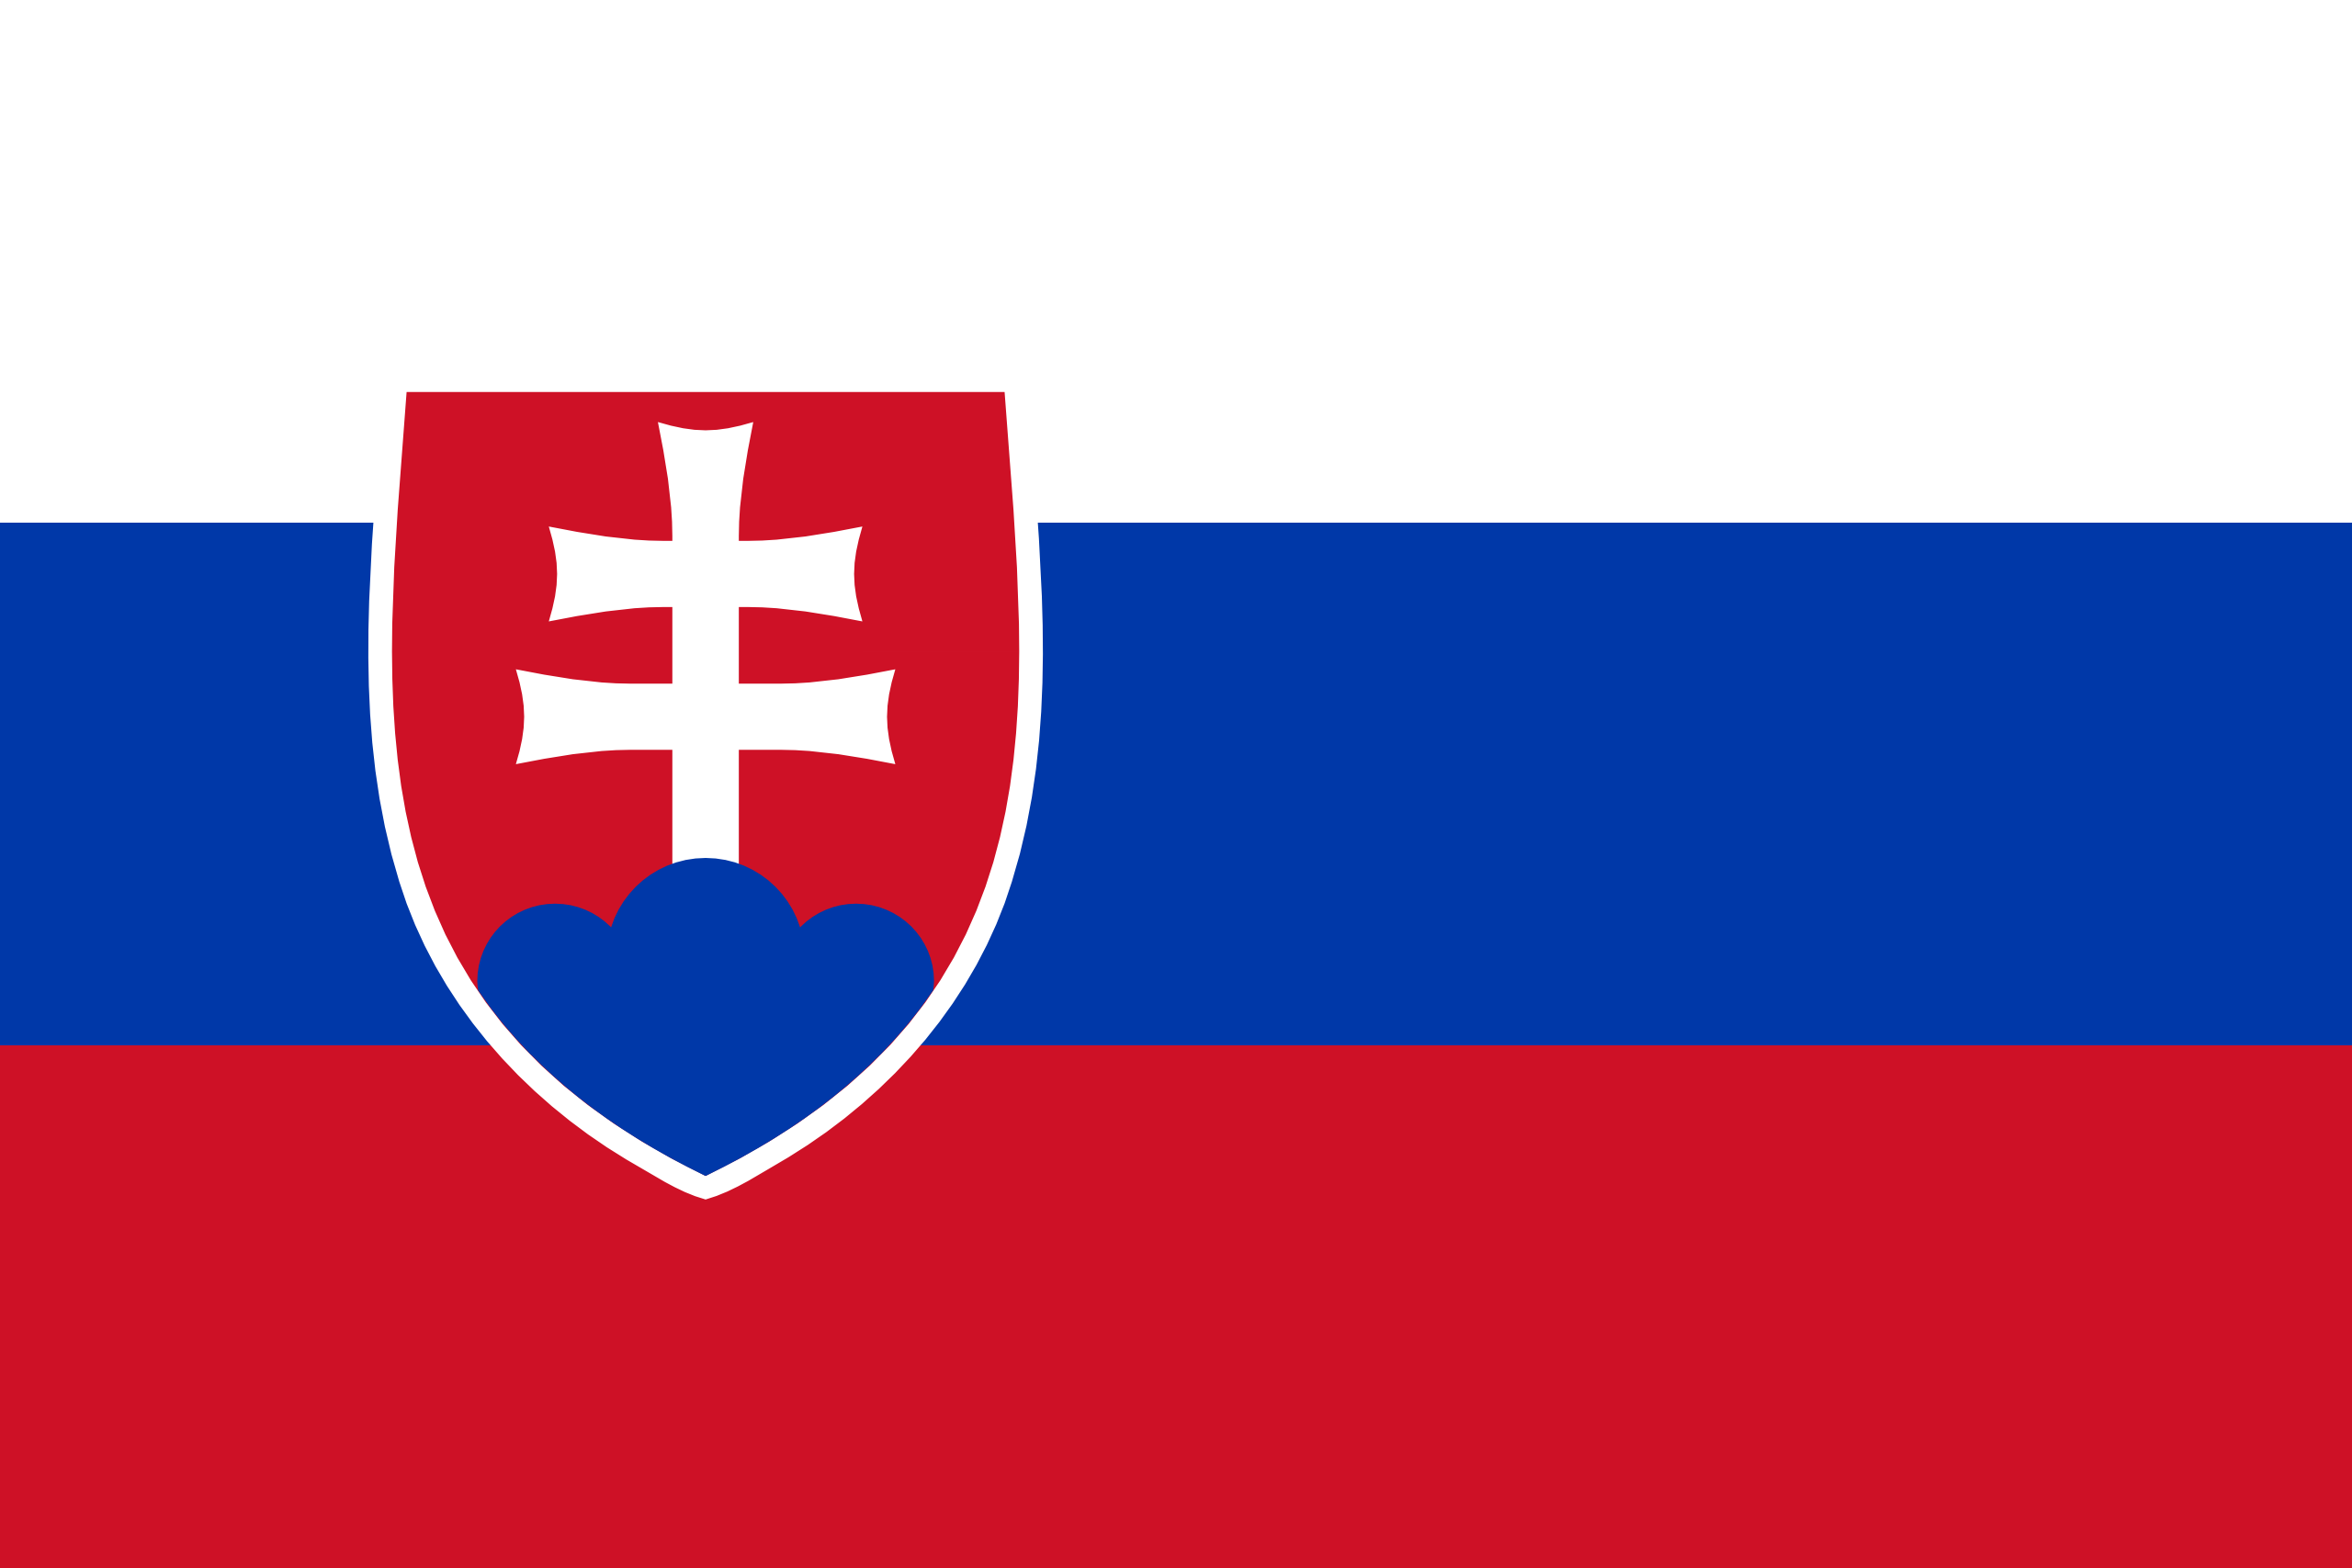 Slovak translator